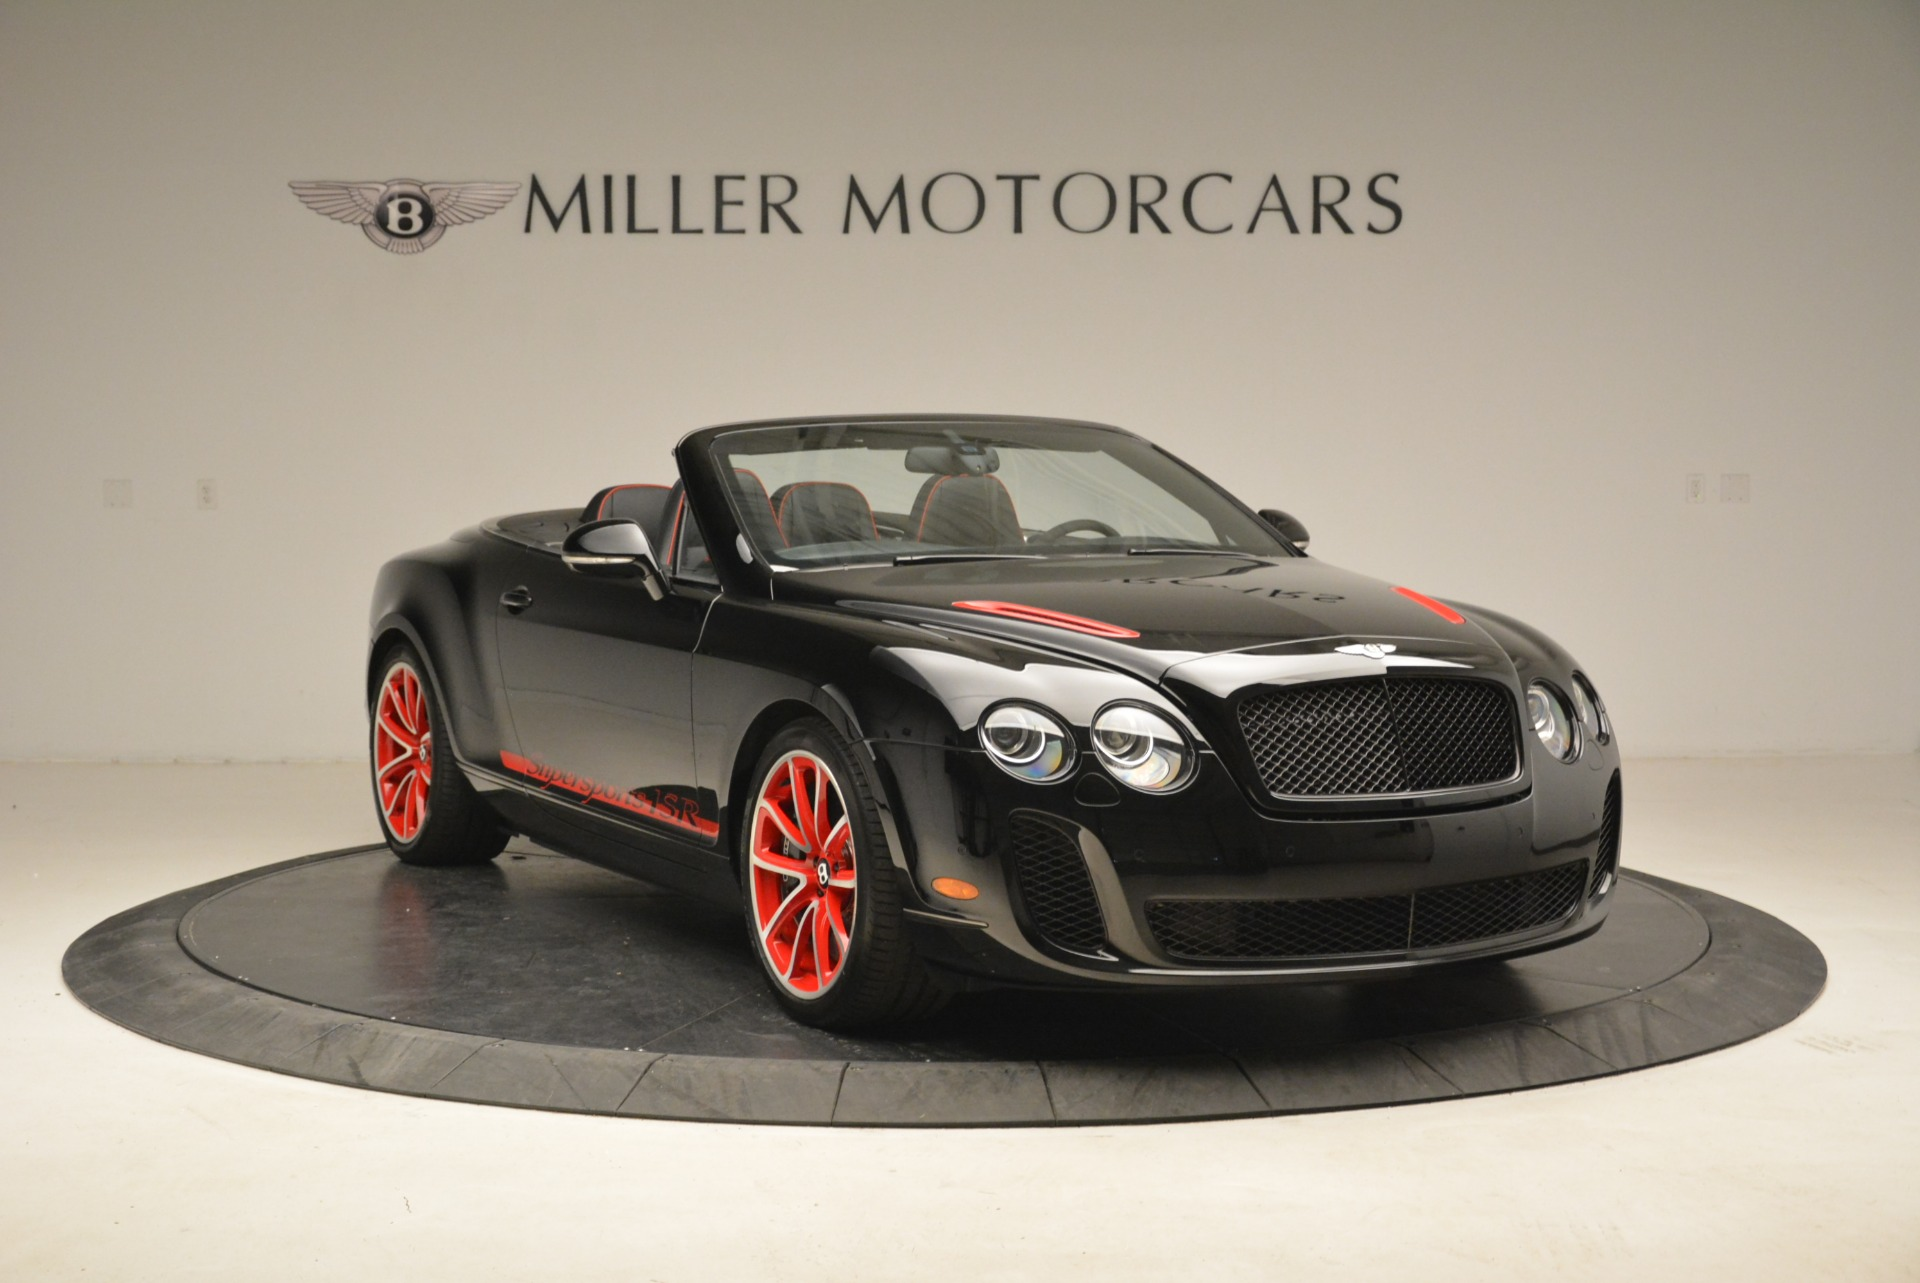 Used 2013 Bentley Continental GT Supersports Convertible ISR For Sale In Greenwich, CT. Alfa Romeo of Greenwich, 7340 2151_p11